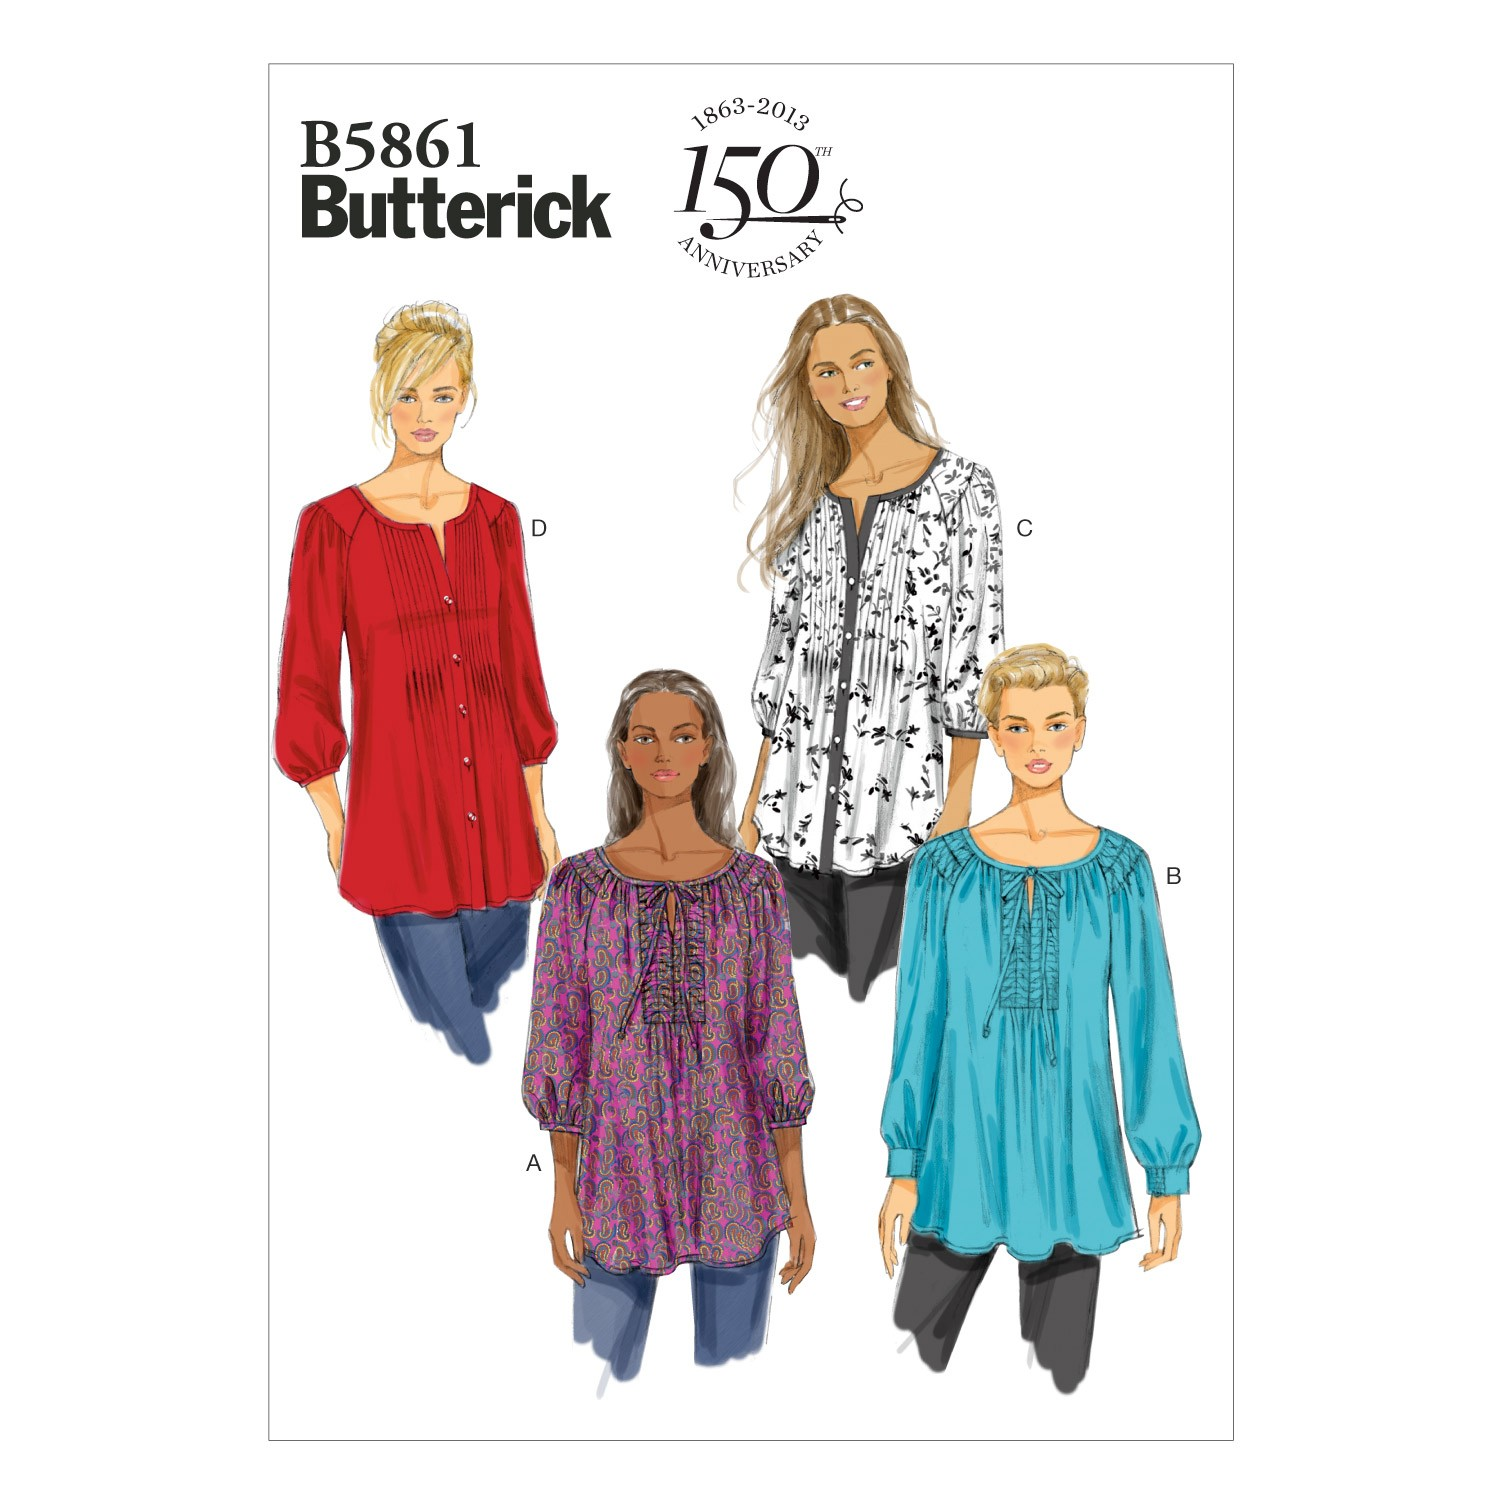 Butterick Sewing Pattern 5861 Misses' Tunic Pullover Top